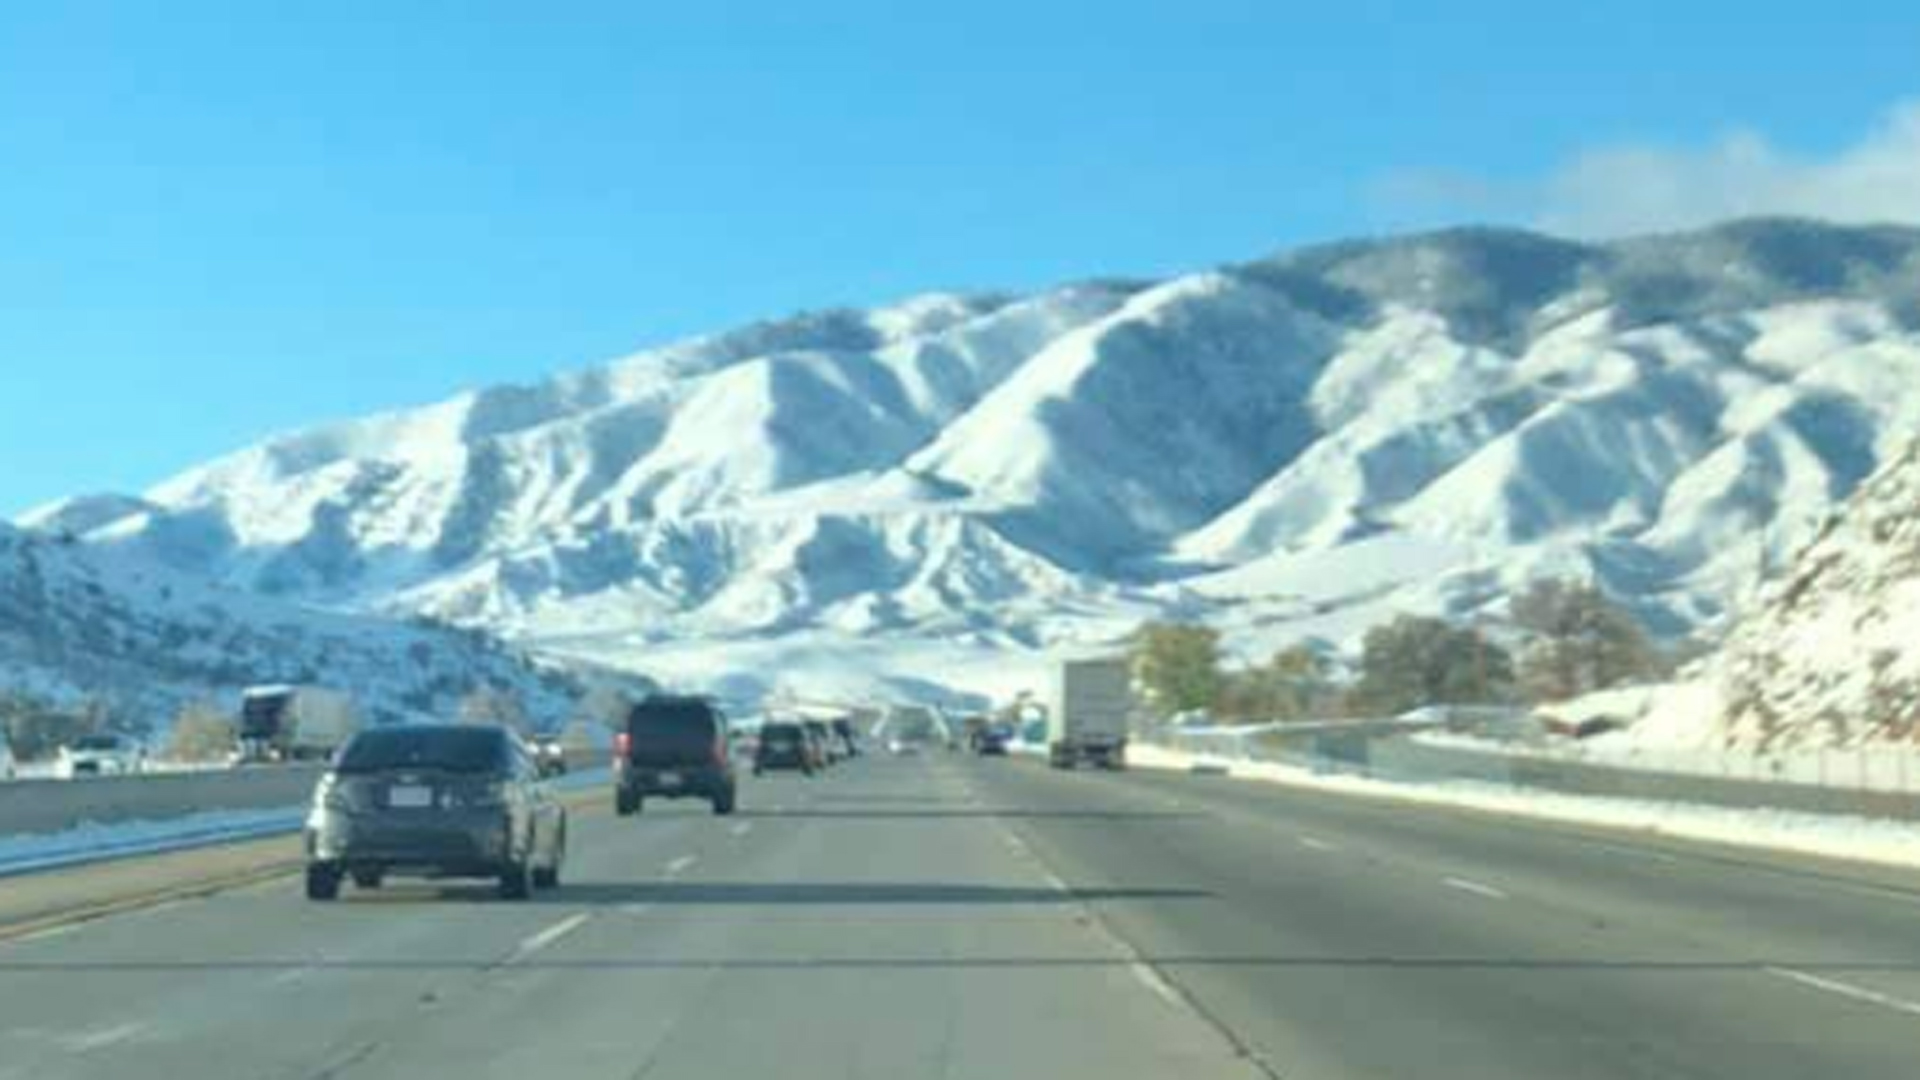 The 5 Freeway along the Grapevine is seen on Nov. 30, 2019. (Credit: California Highway Patrol Fort Tejon)